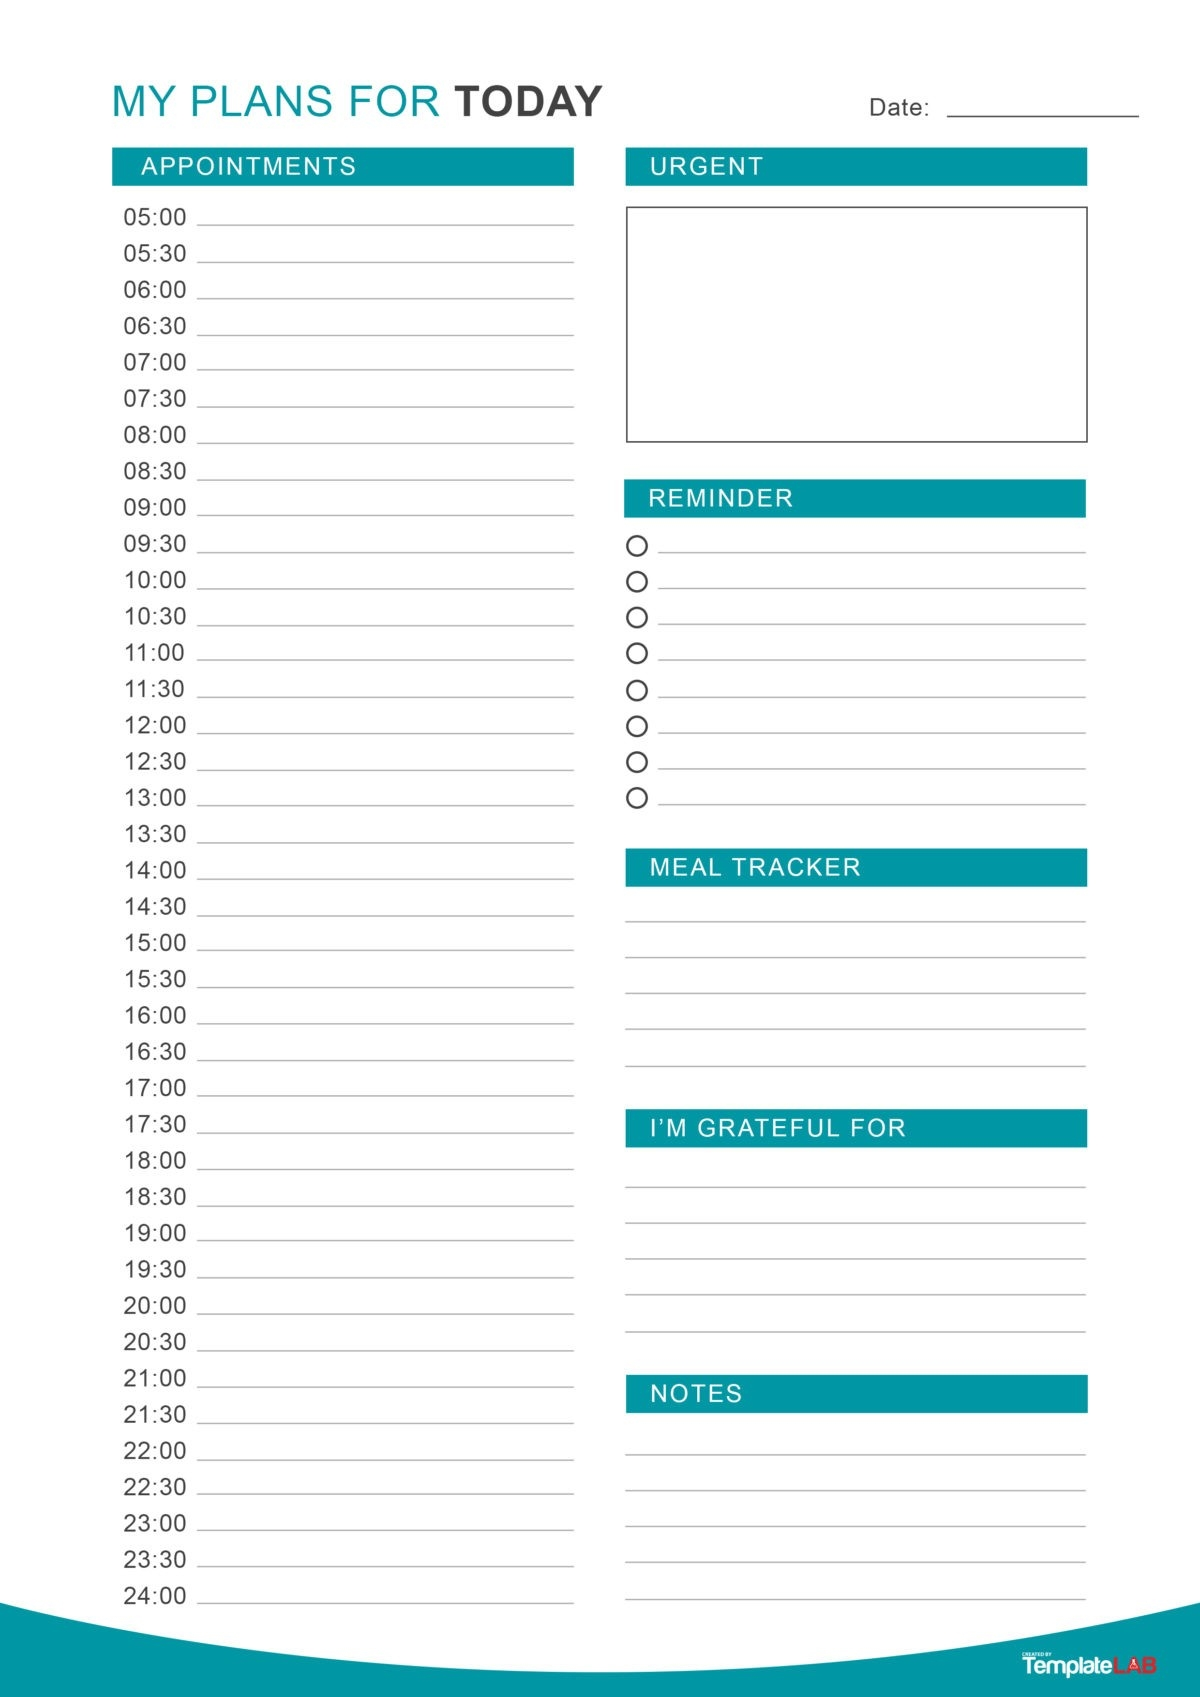 47 Printable Daily Planner Templates (Free In Word/Excel/Pdf)  Printable Day Calendar